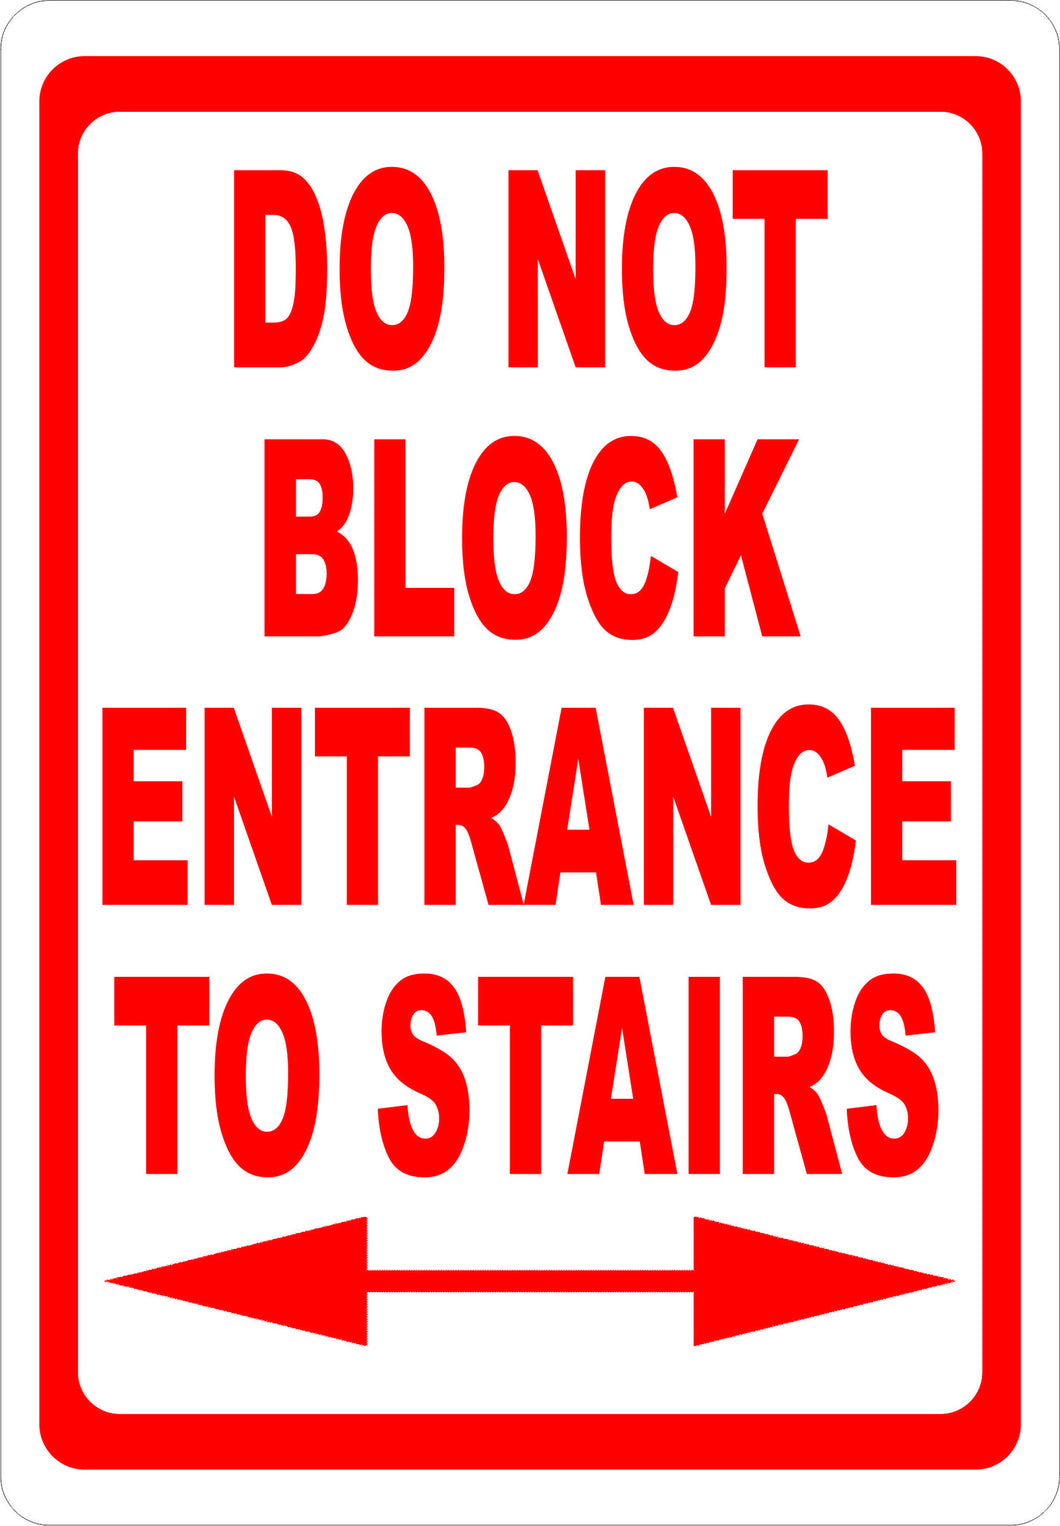 Do Not Block Entrance To Stairs Sign   Signs U0026 Decals By SalaGraphics